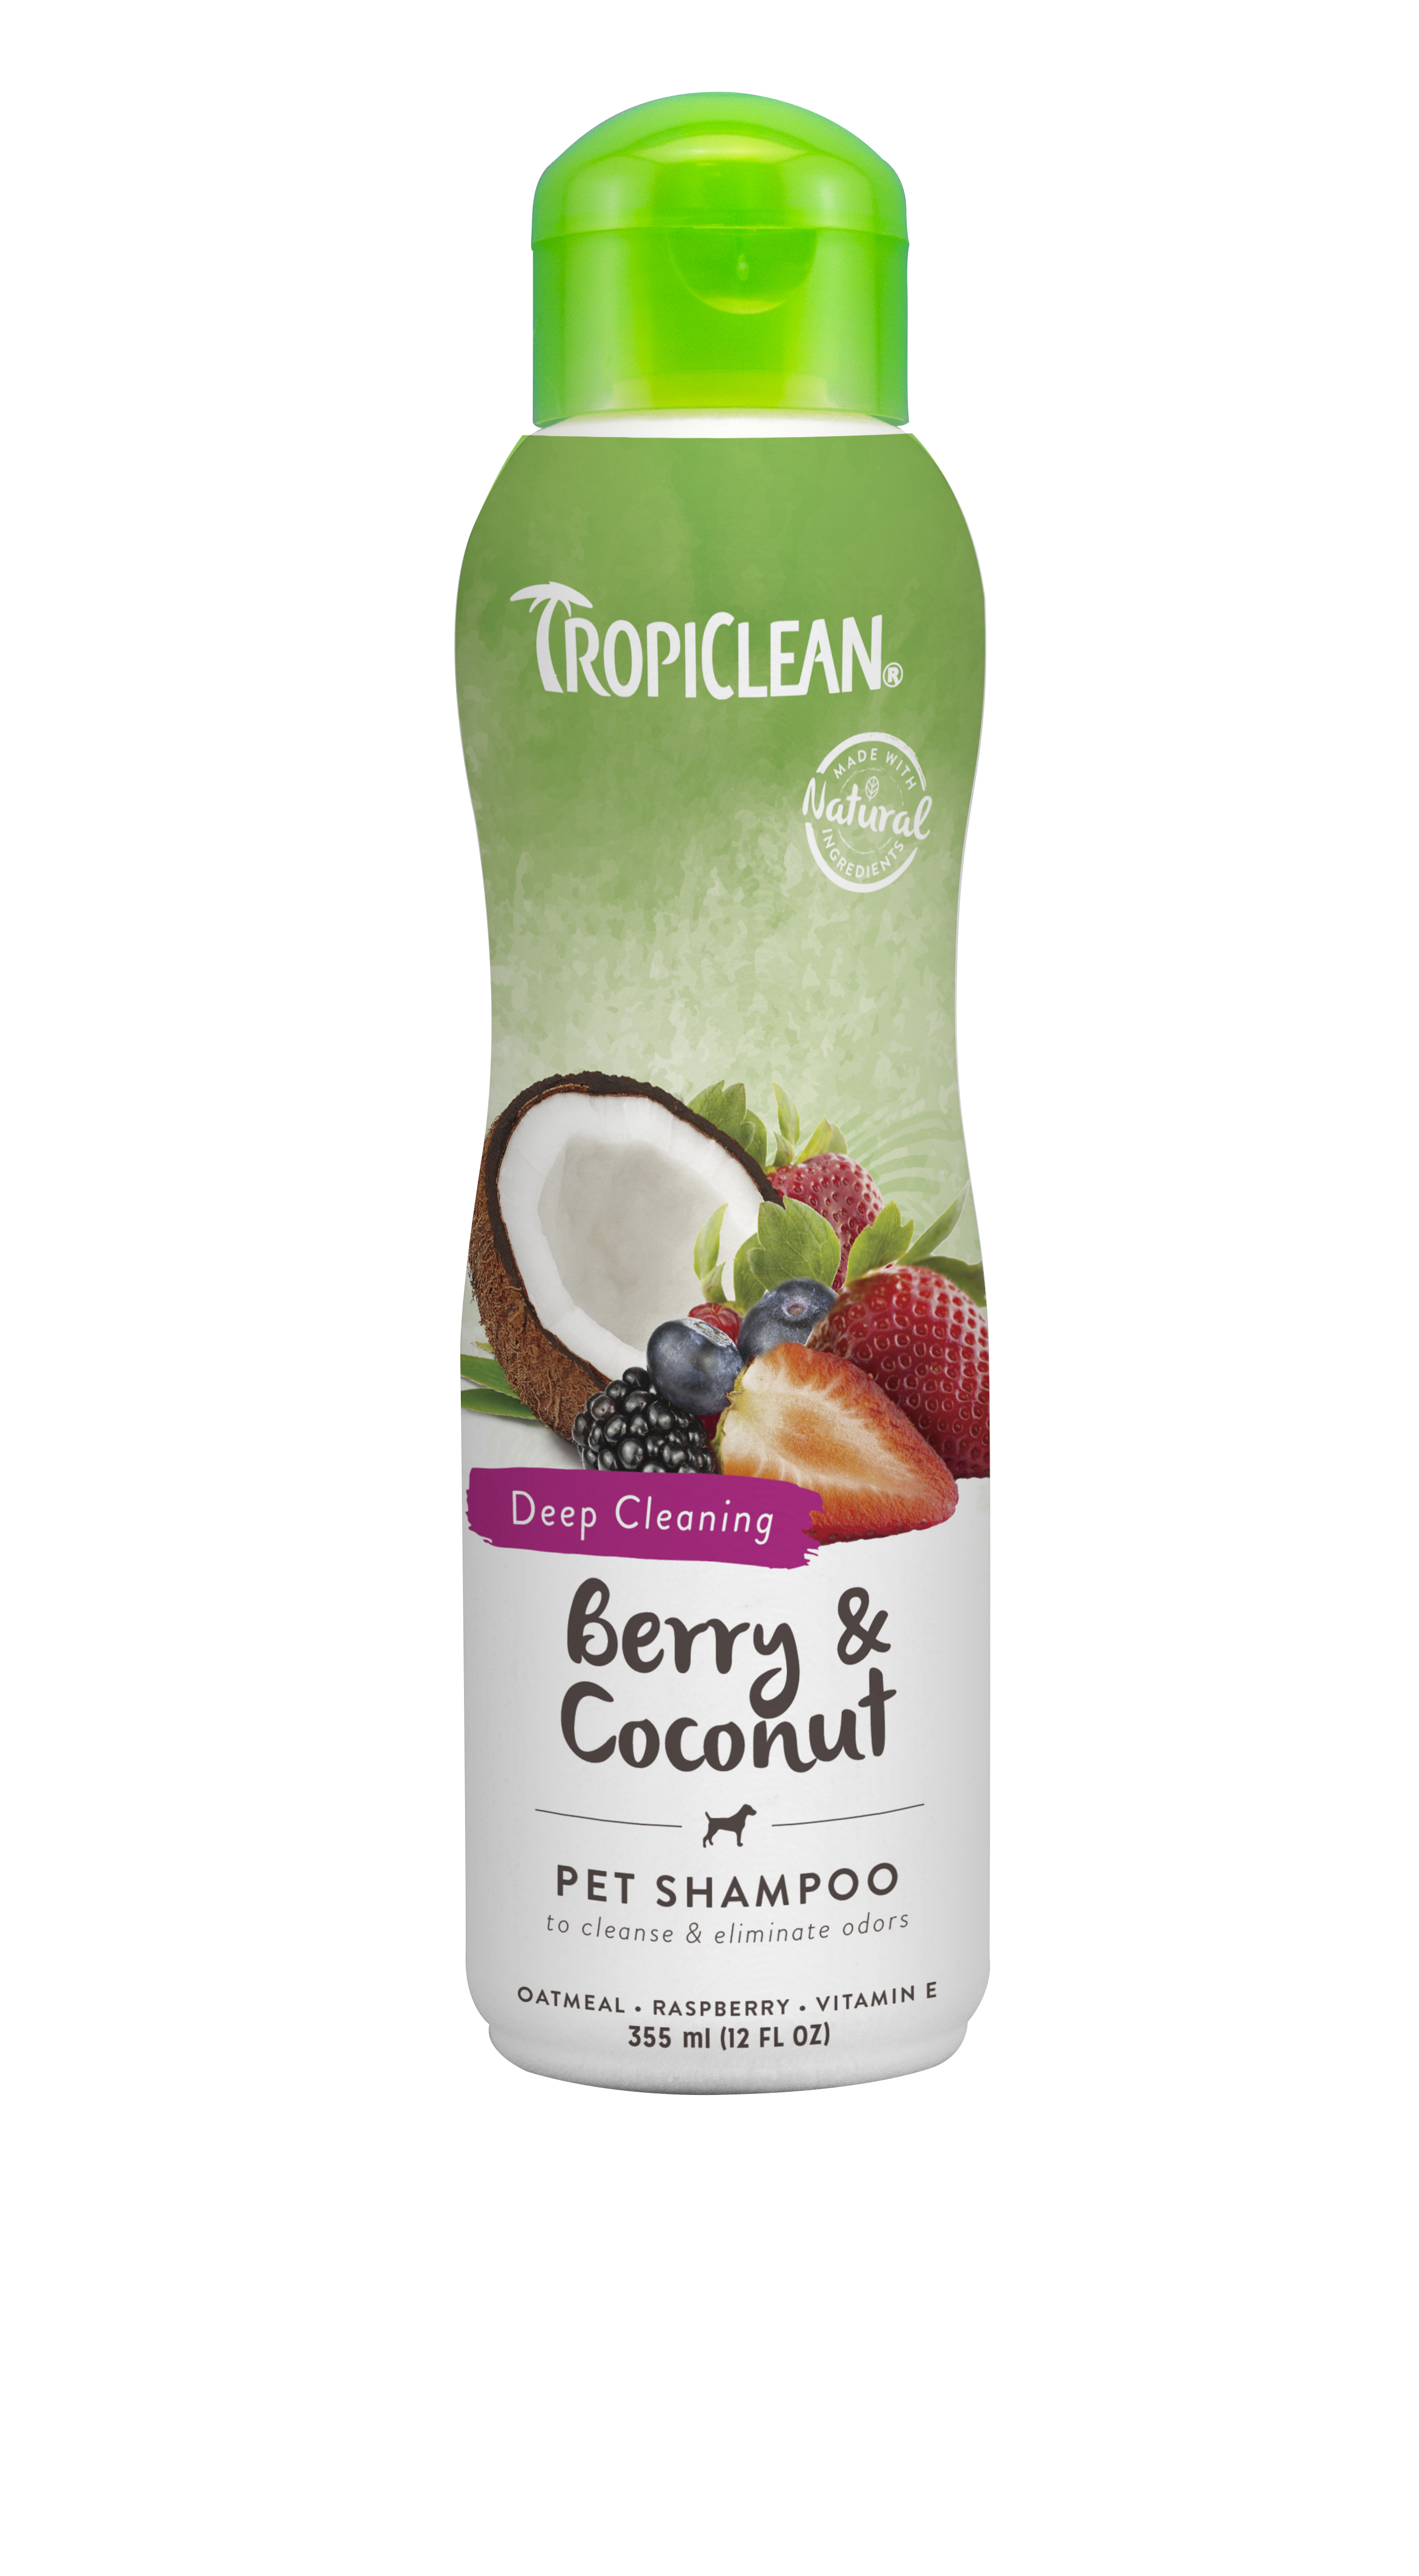 Tropiclean Berry & Coconut